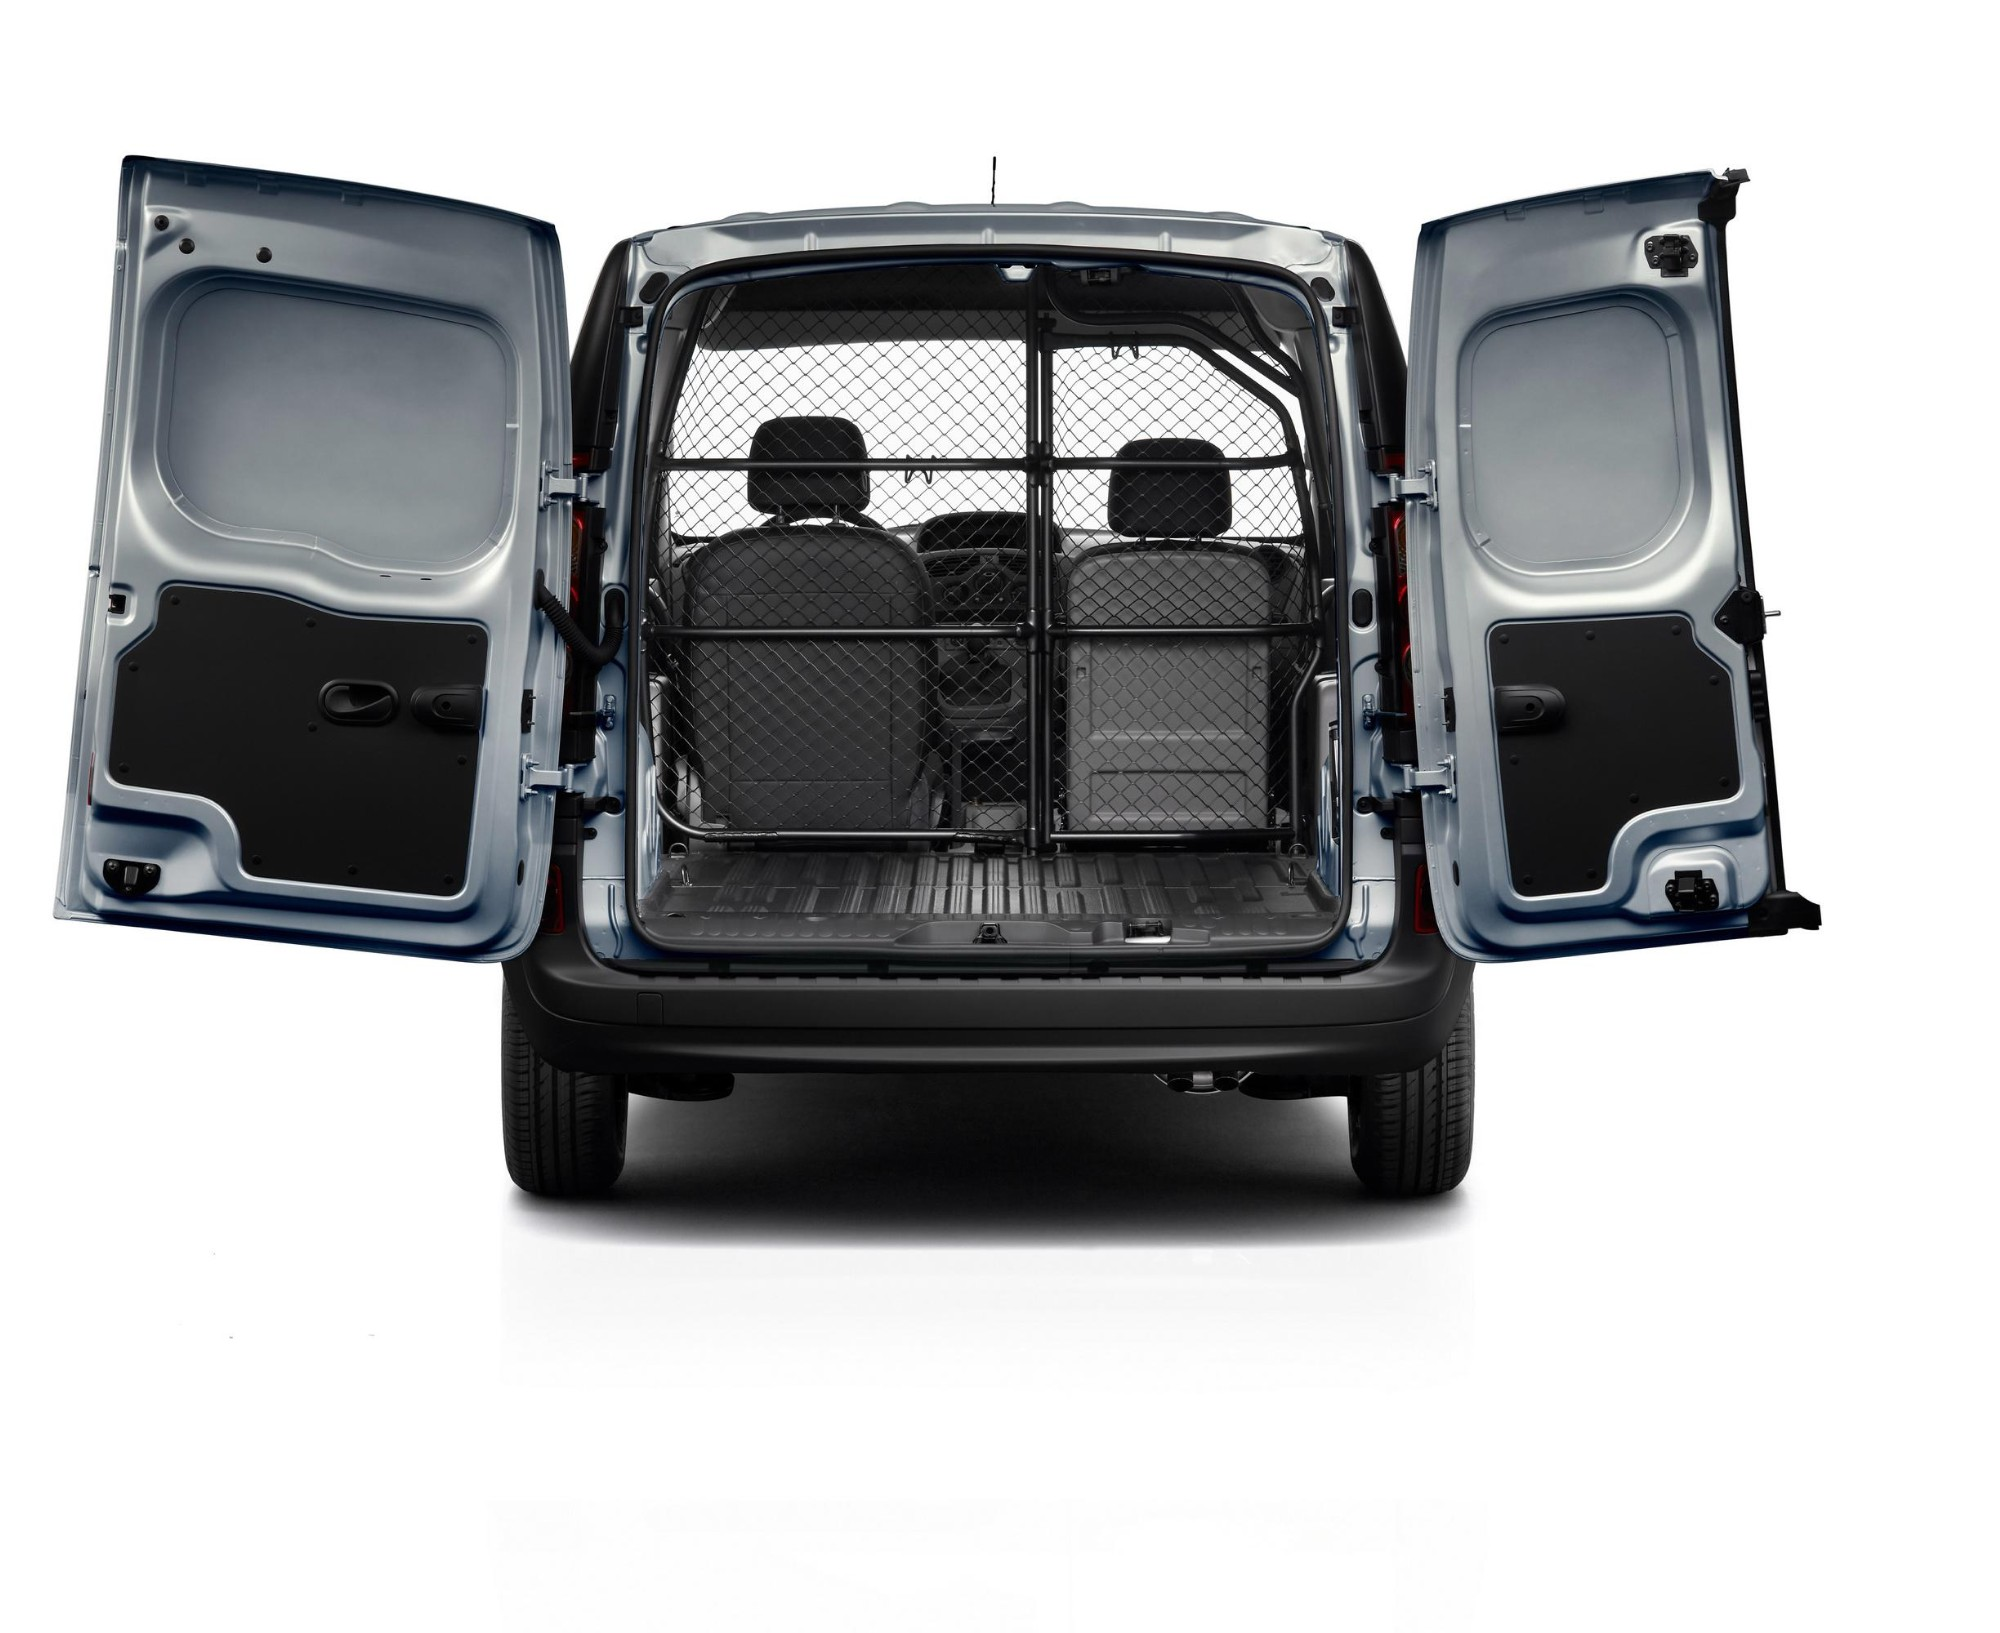 vul renault kangoo express et express compact les fiches techniques. Black Bedroom Furniture Sets. Home Design Ideas